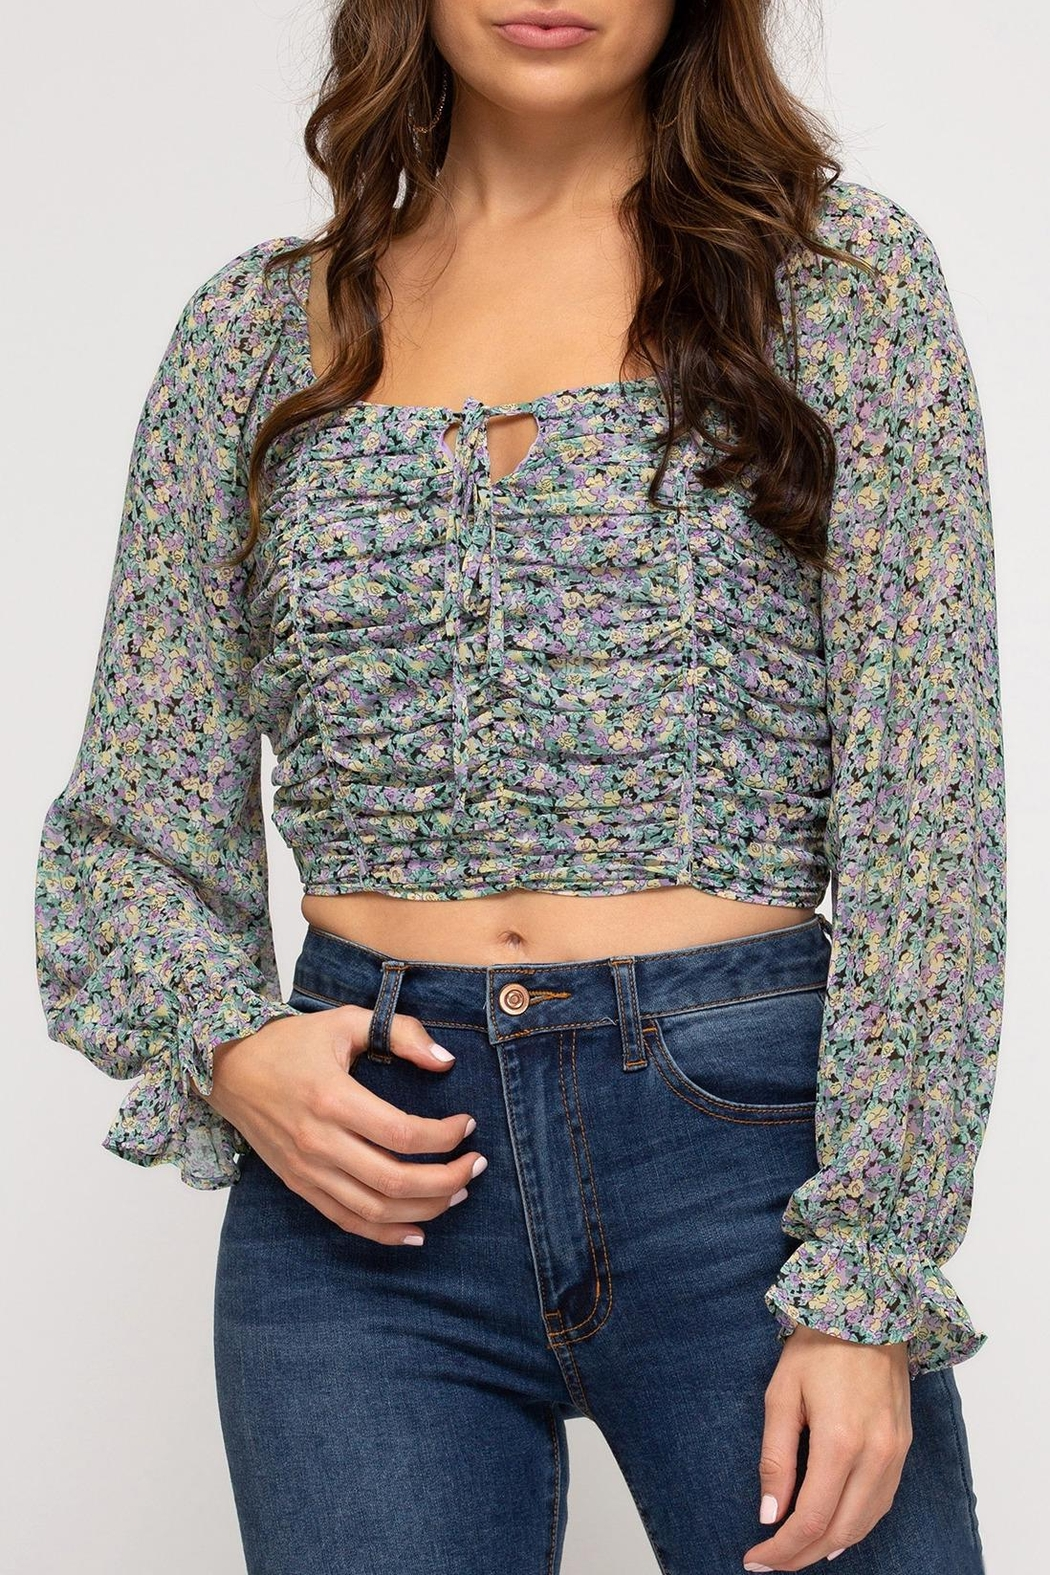 She + Sky Provence Floral Top - Main Image